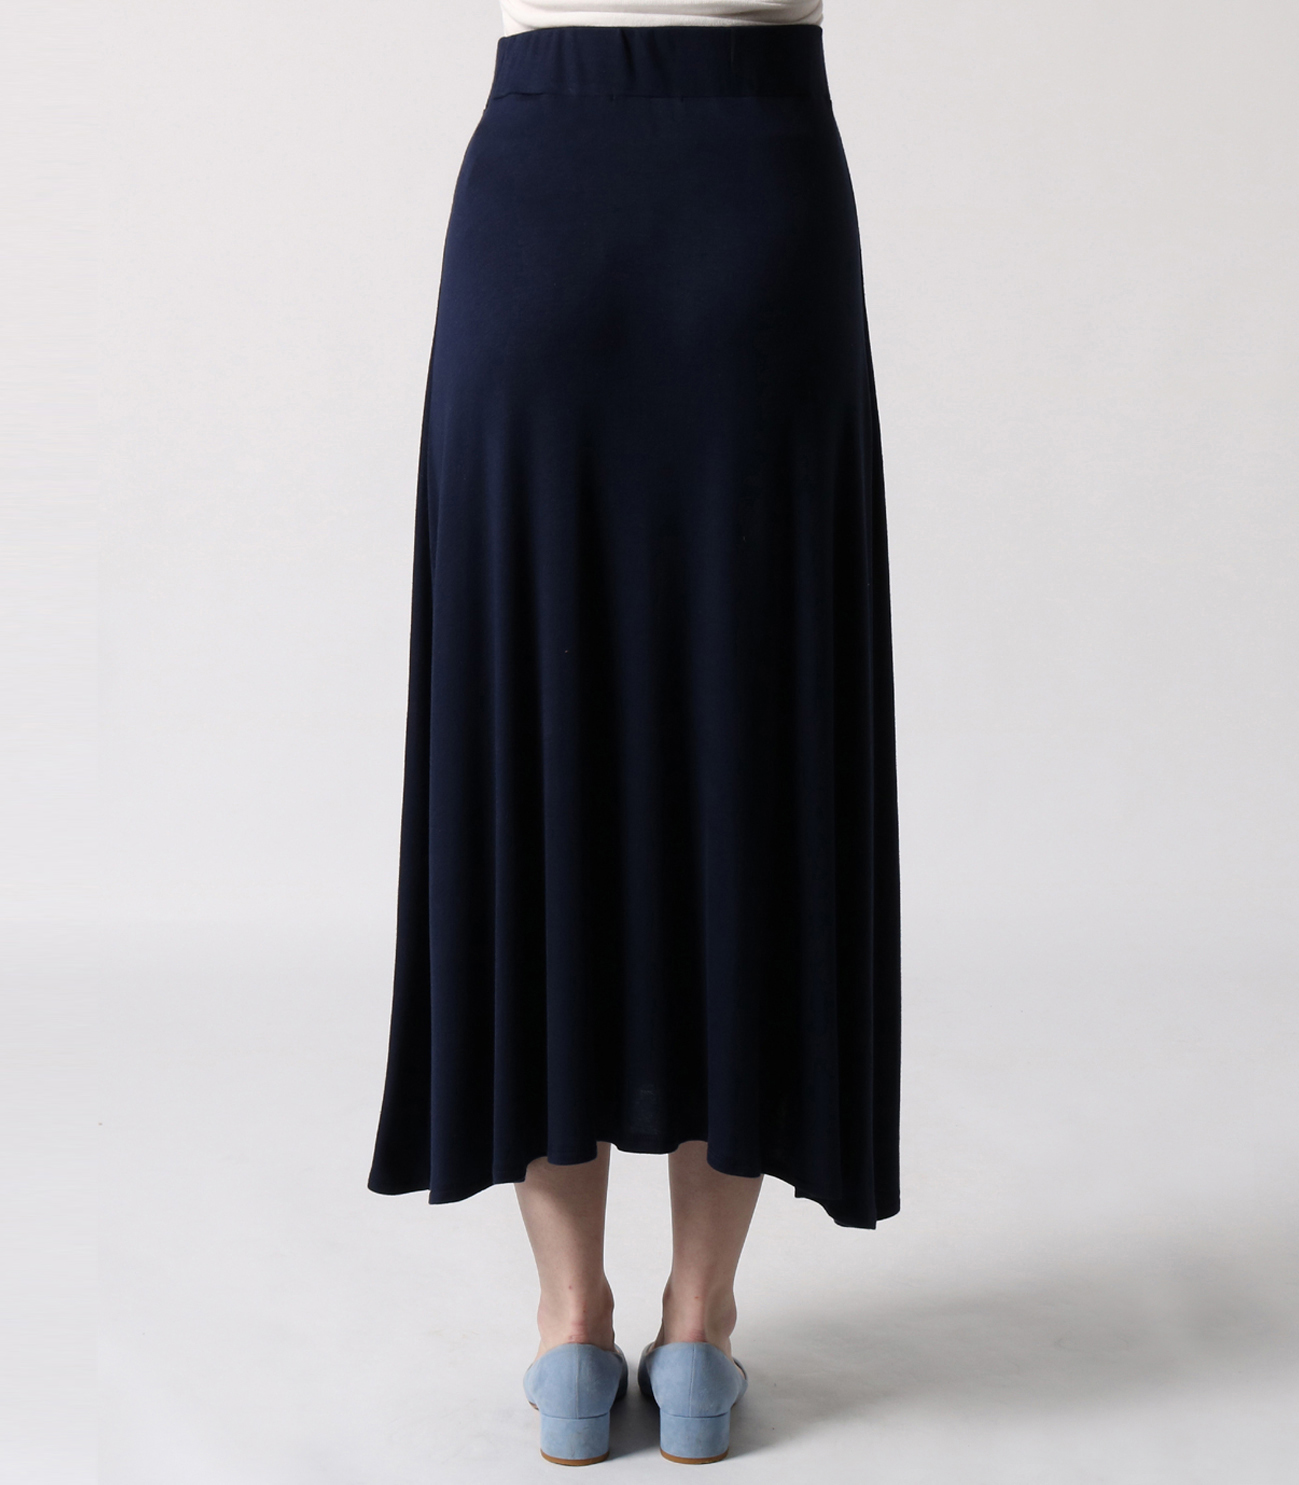 refined jersey long skirt 詳細画像 black 4